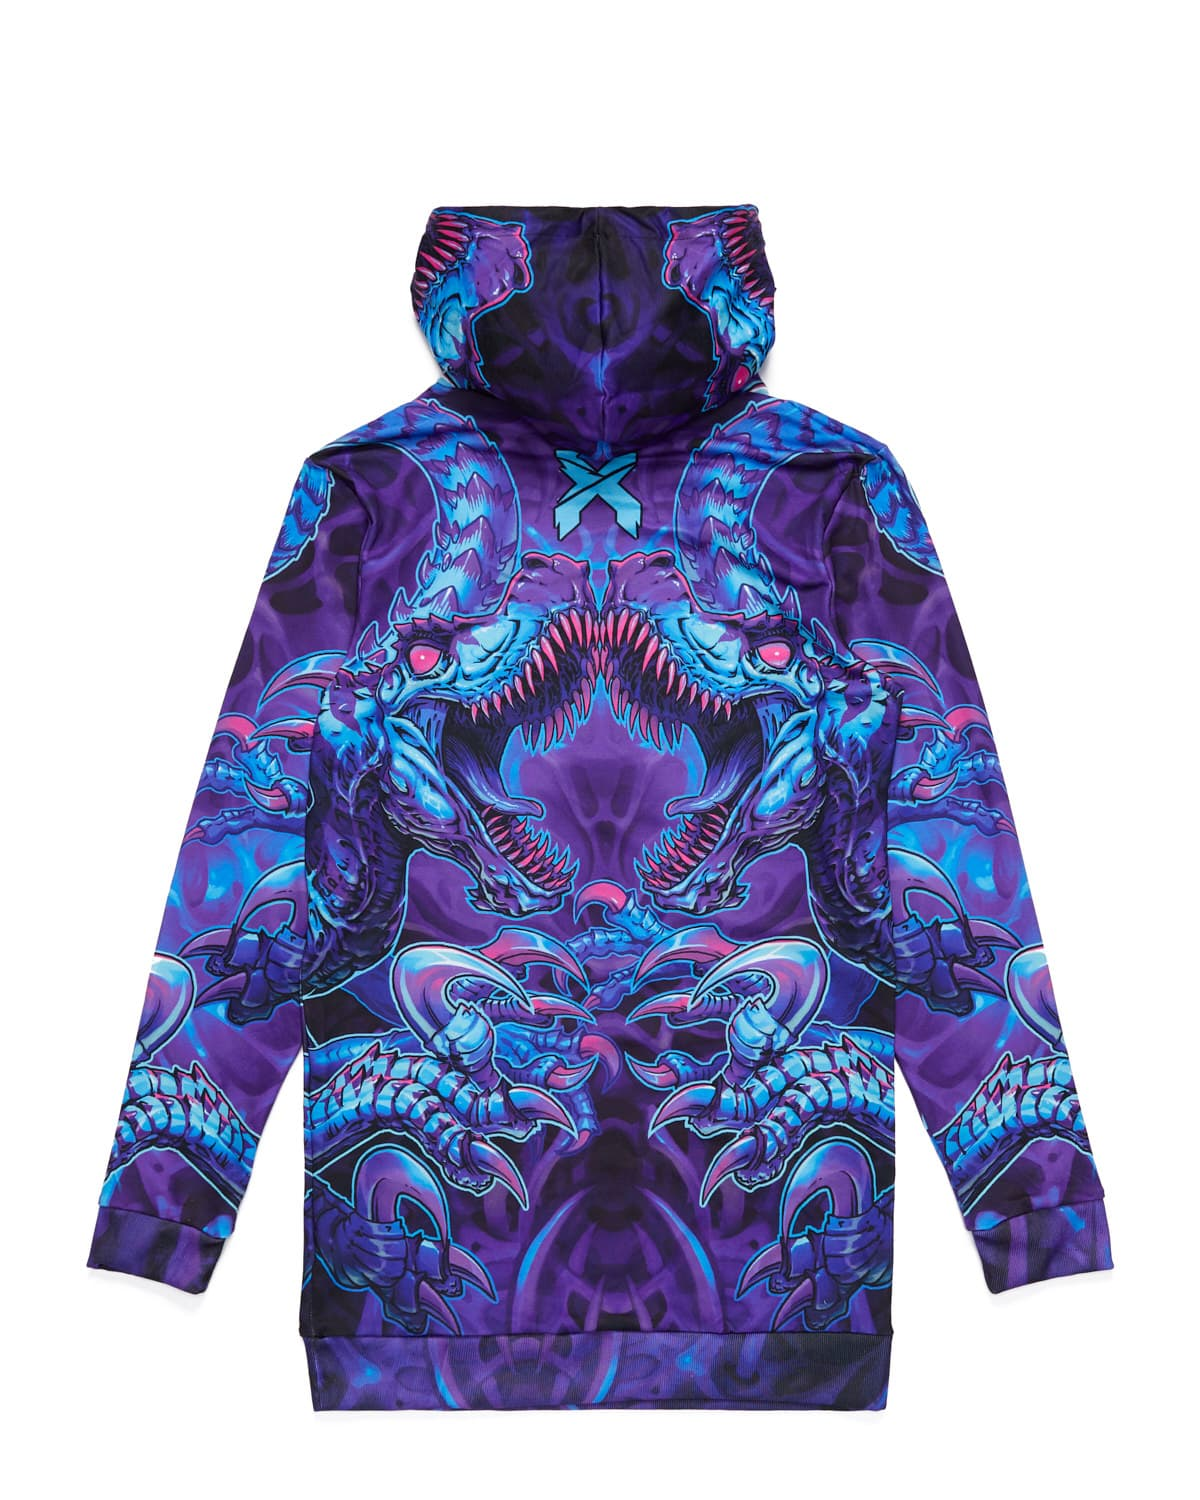 'Raptor Attack' Dye Sub Hoodie Dress - Nebula